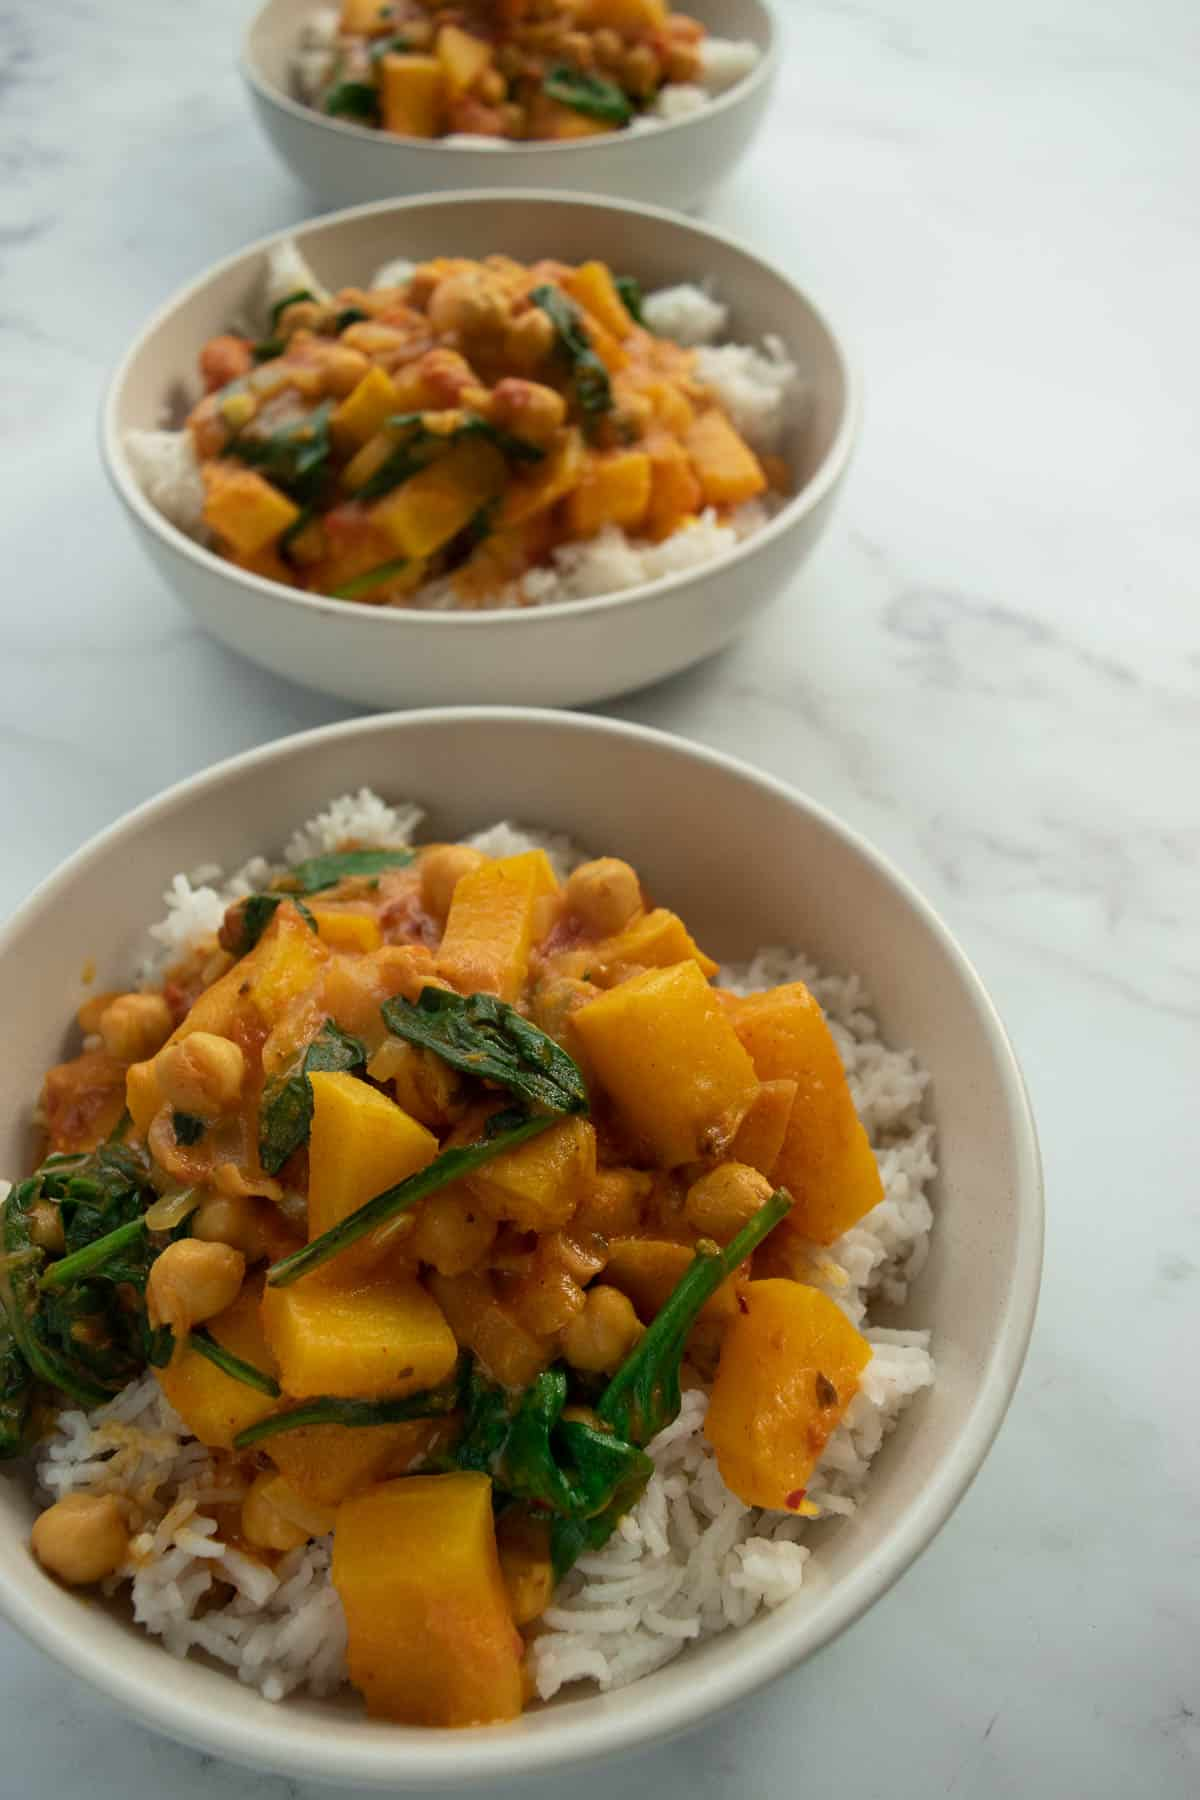 Bowls of butternut squash chickpea curry and rice.